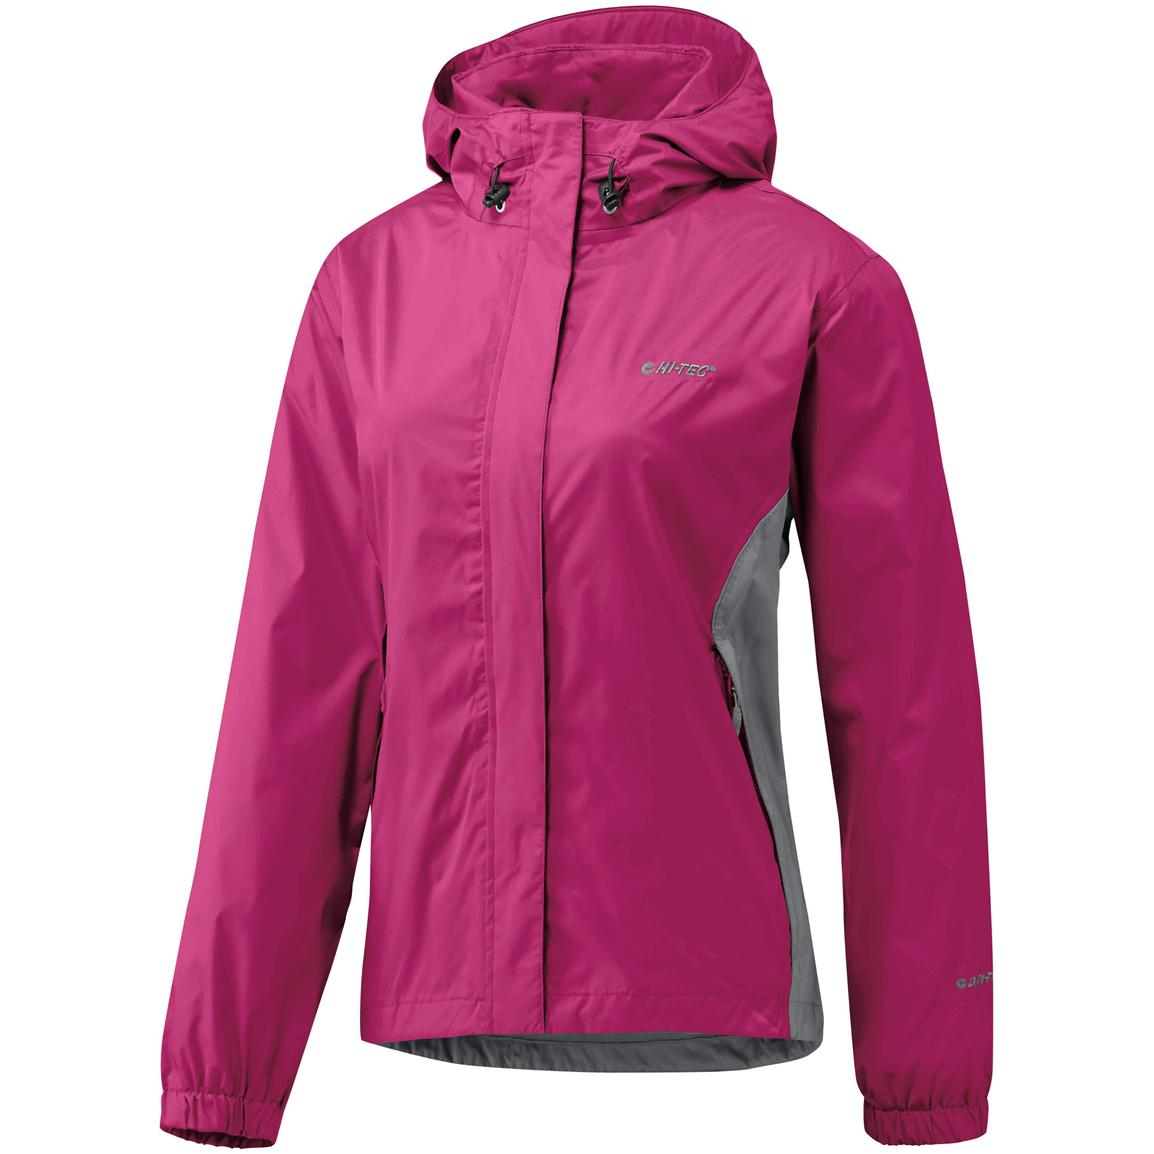 Women's Hi-Tec® Pour-off Waterproof / Breathable Shell Jacket, Pinot / November